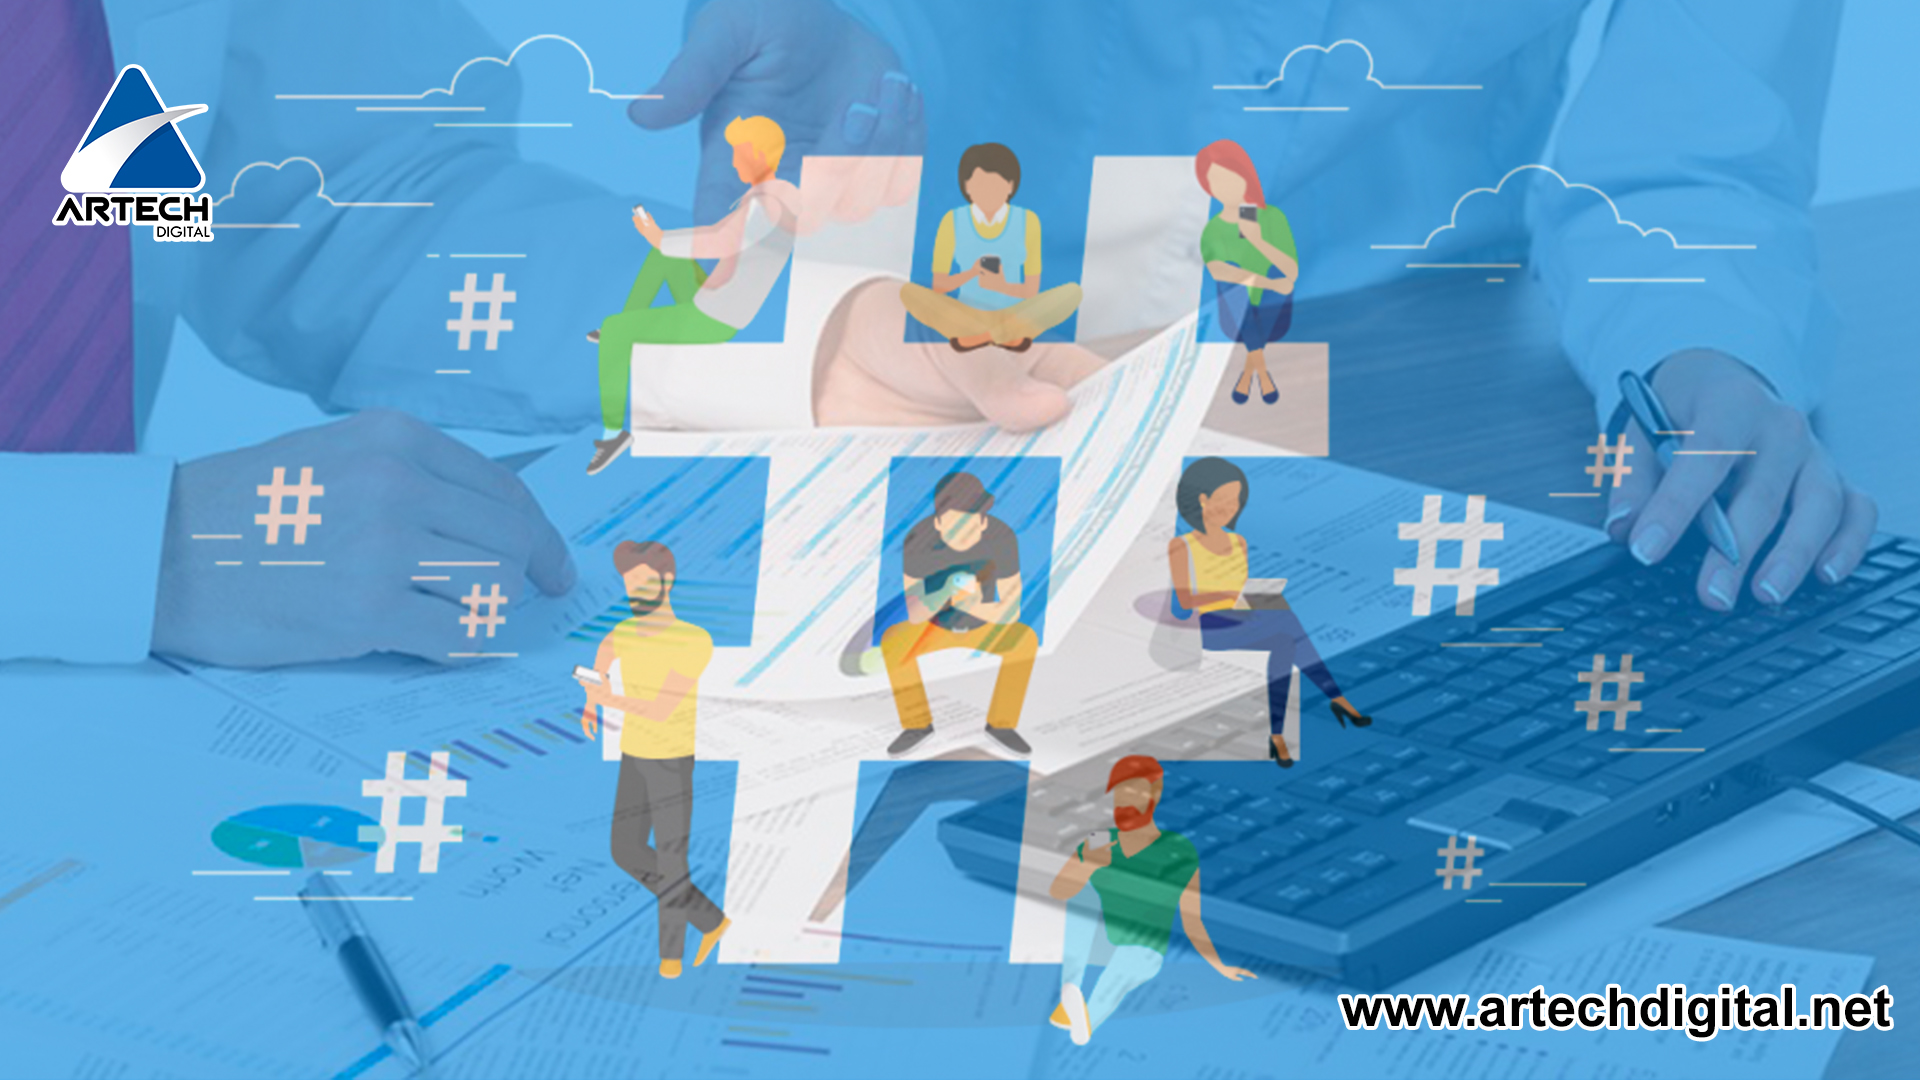 Hashtag on Social Networks improves your marketing strategy